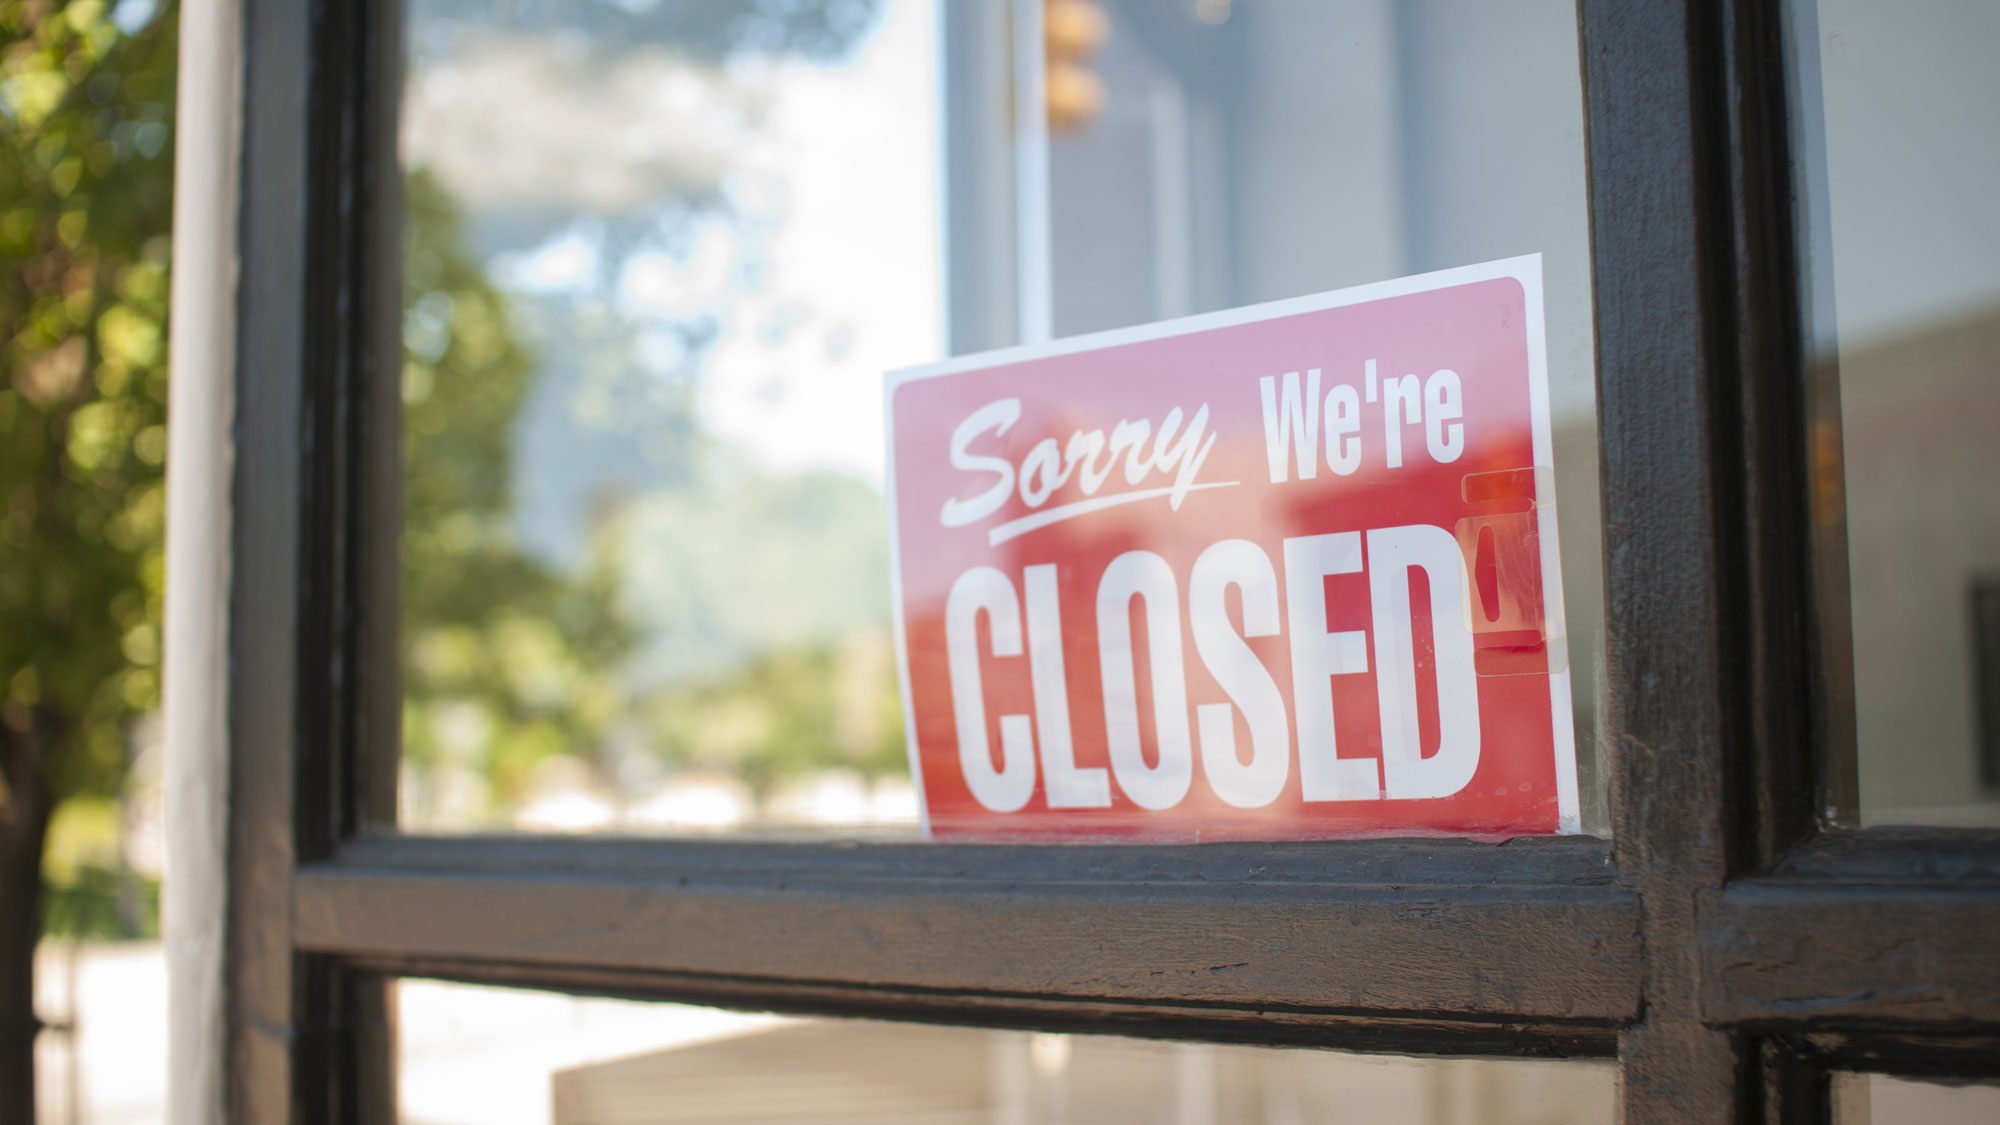 A closed on a storefront. GETTY IMAGES/huePhotography.